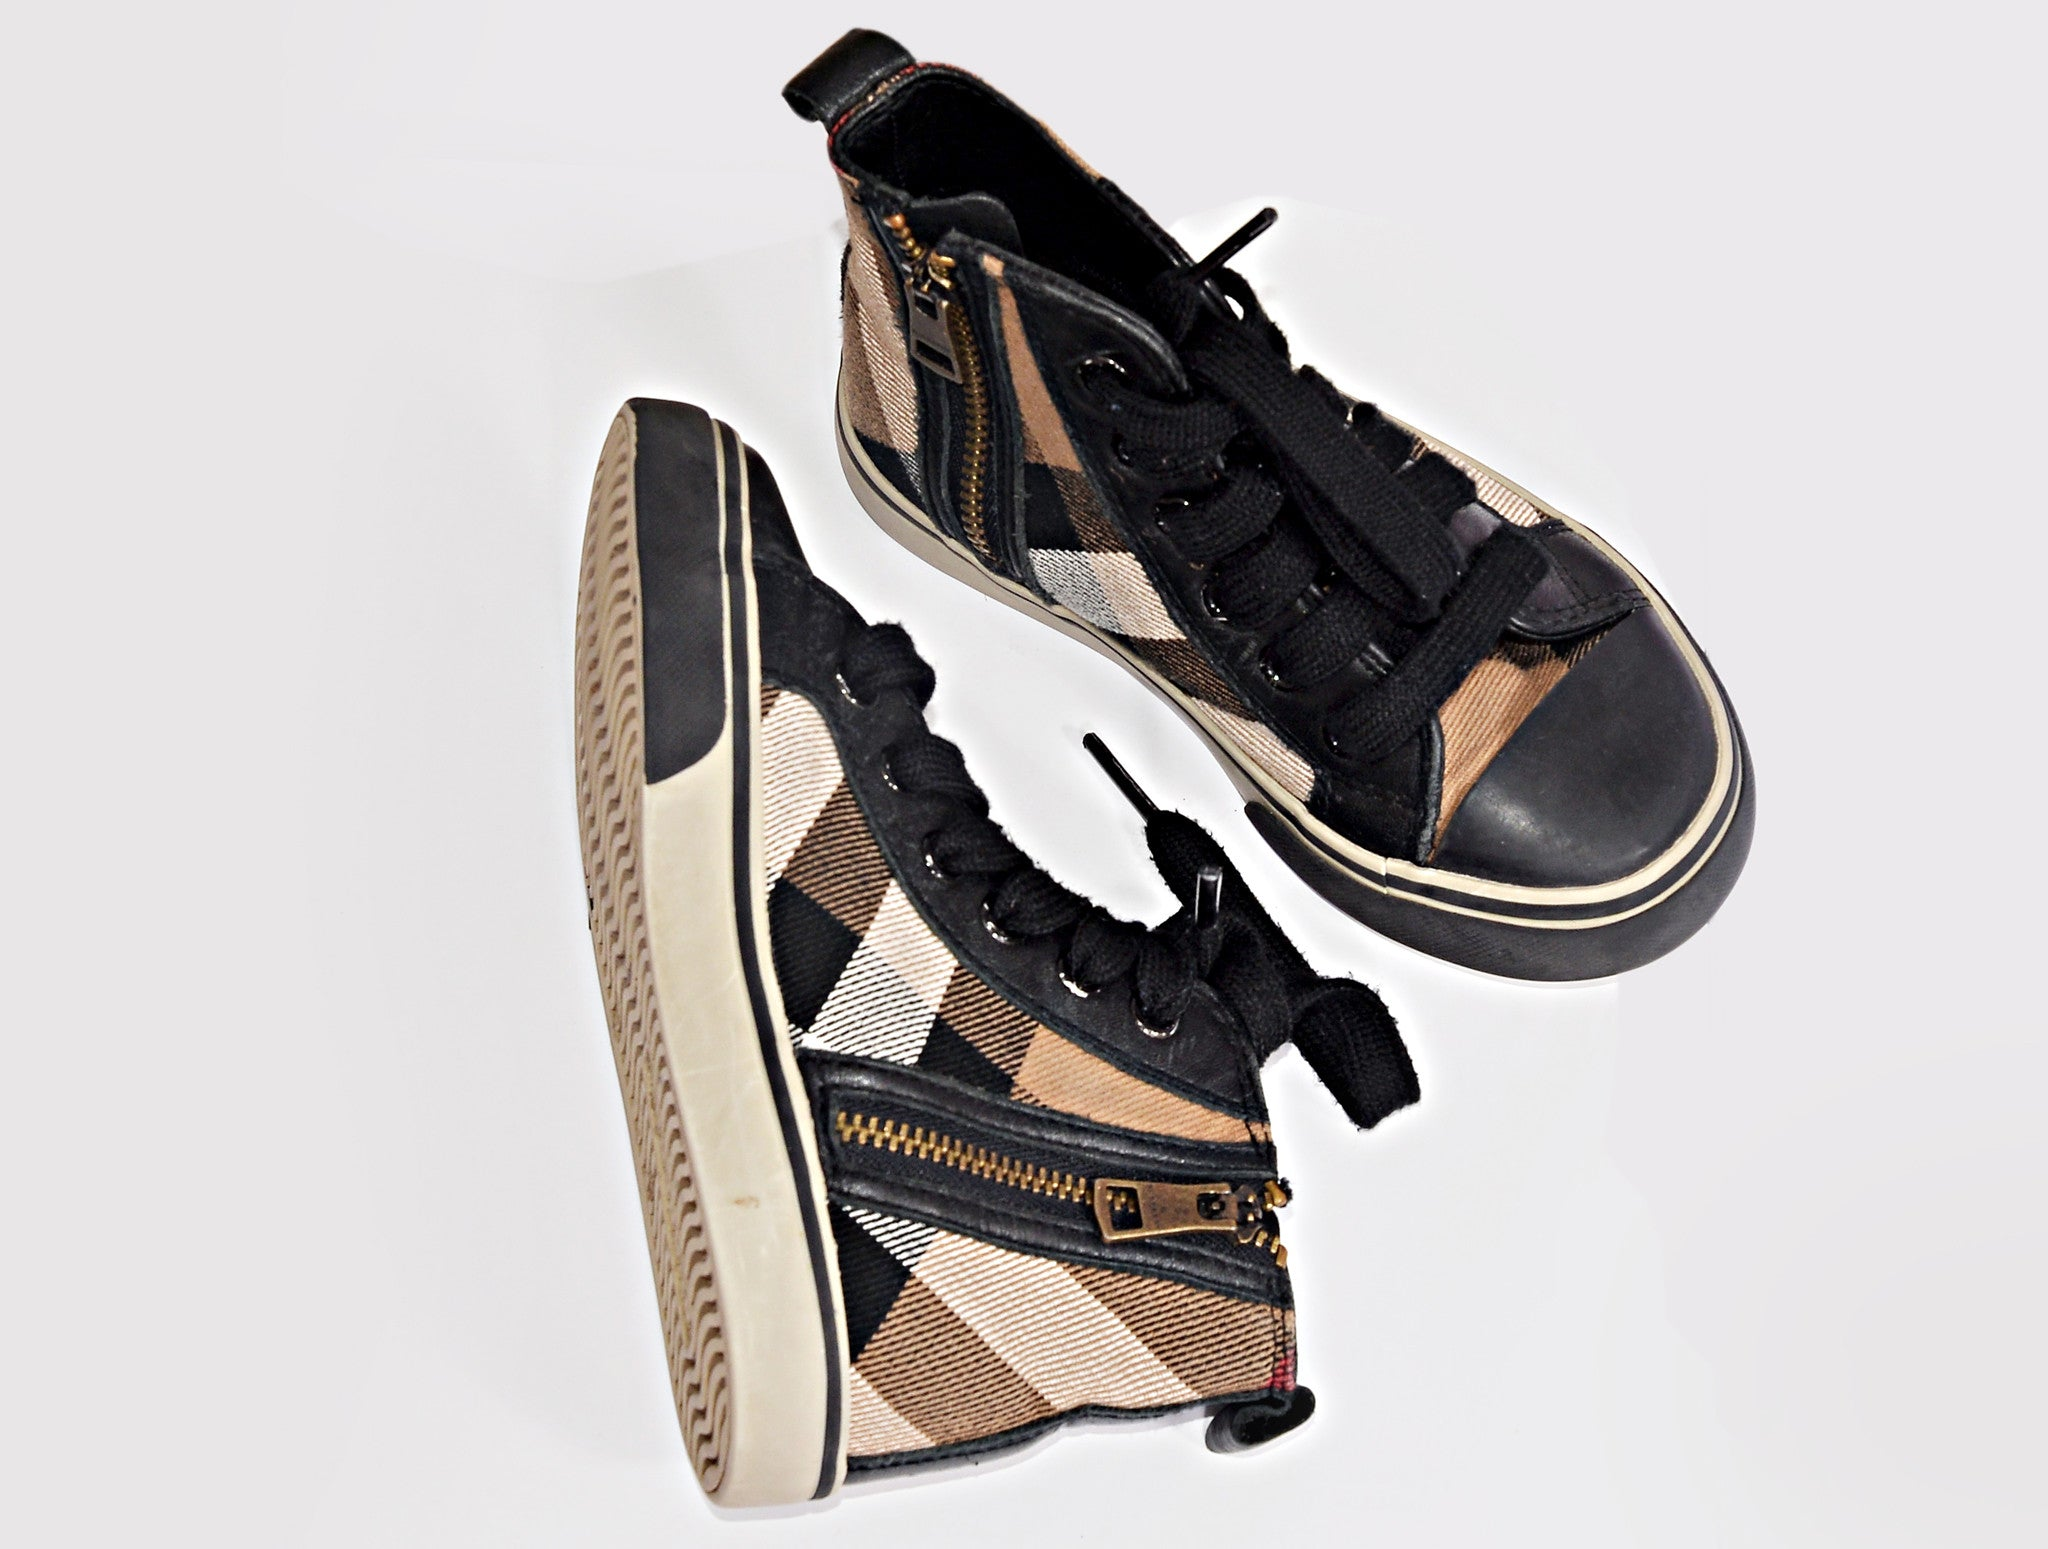 CHECK HIGH TOPS SHOES - kidsstyleforless